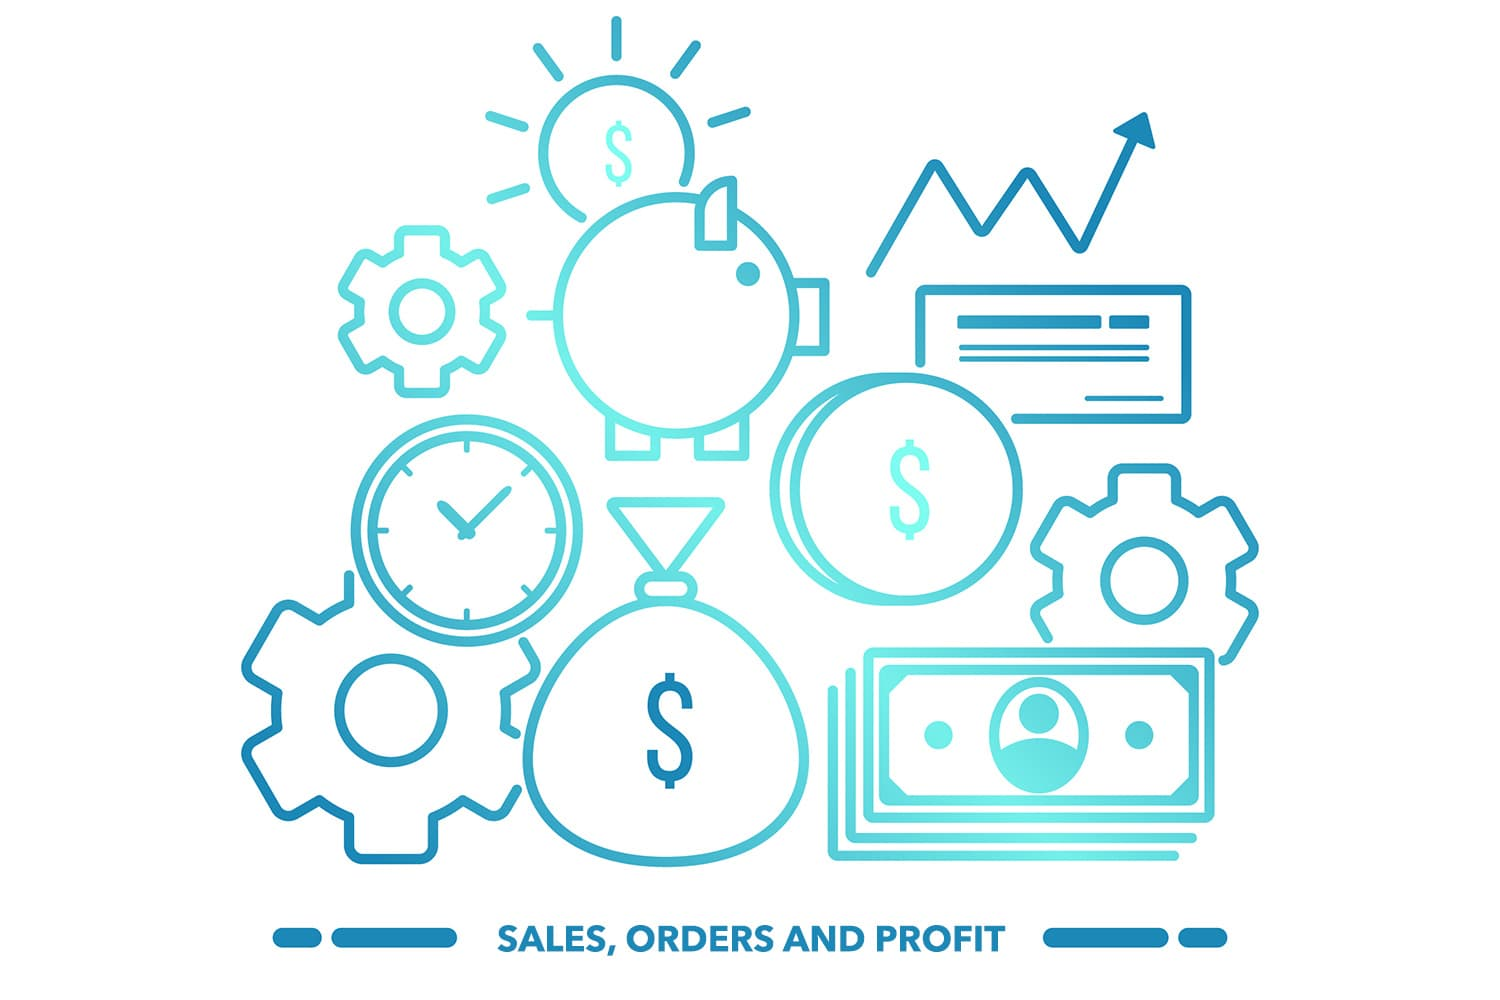 SapphireOne ERP application drives sales, orders and profit